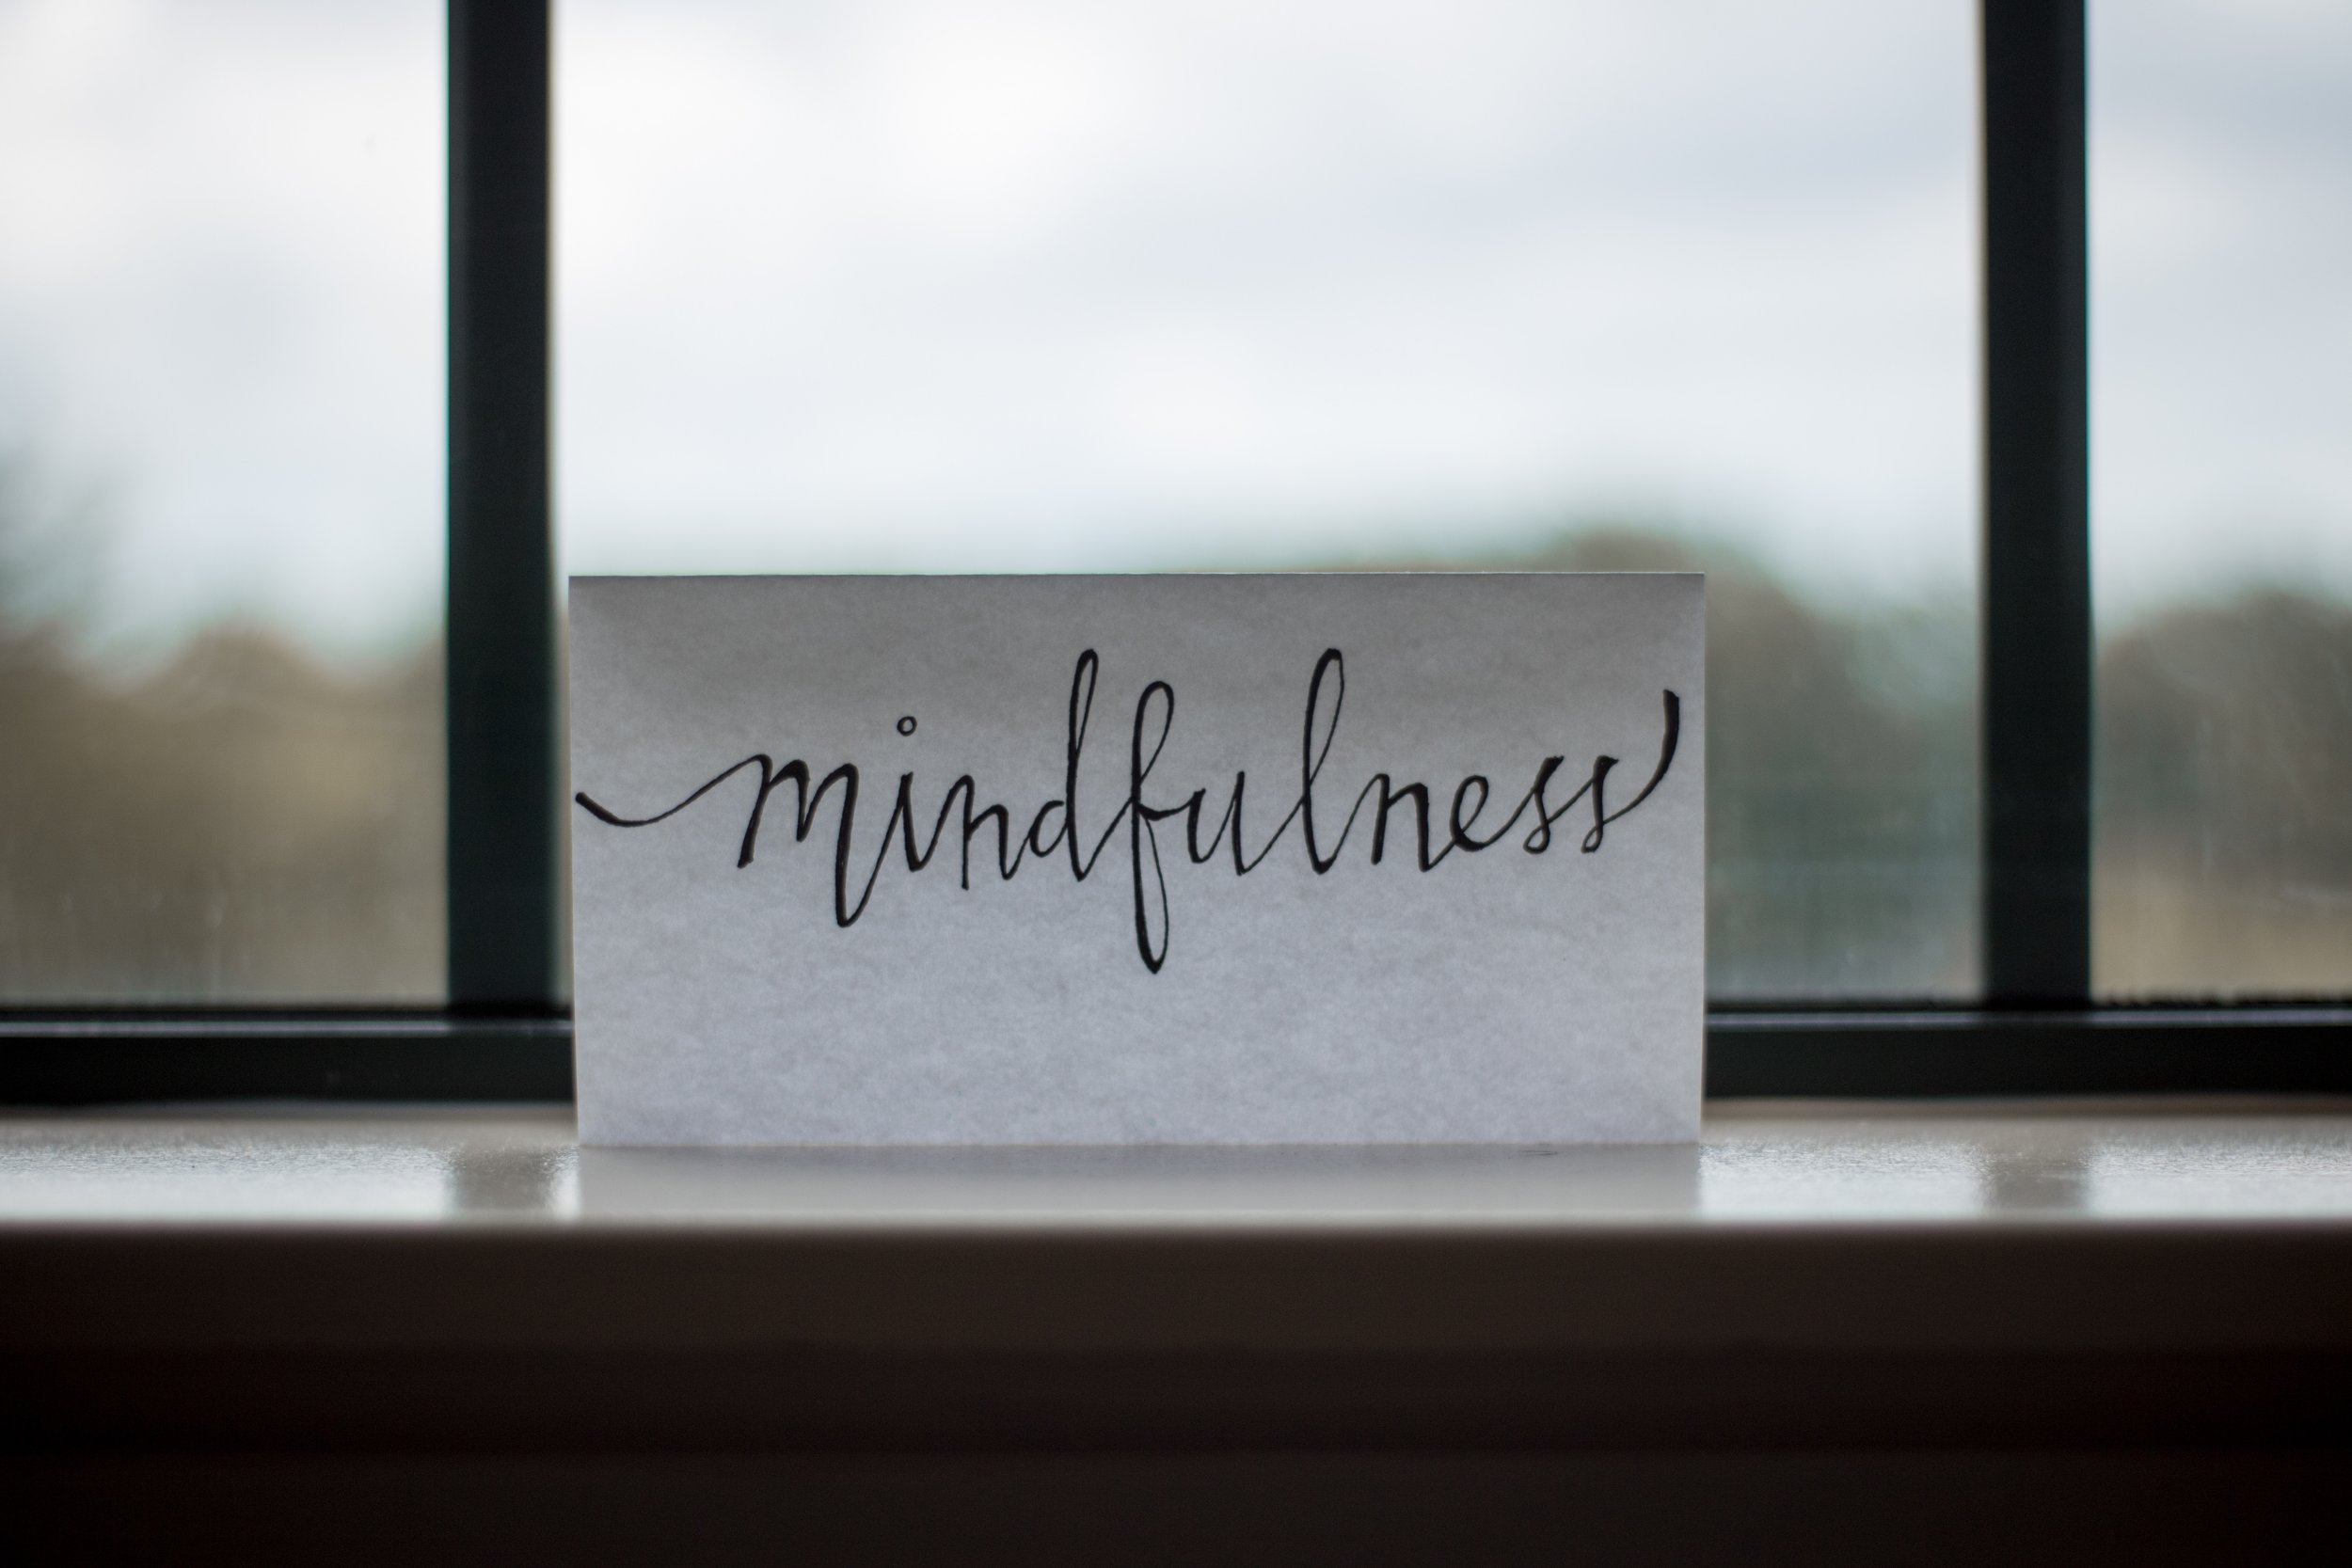 Mindfulness - MBSR course with cert